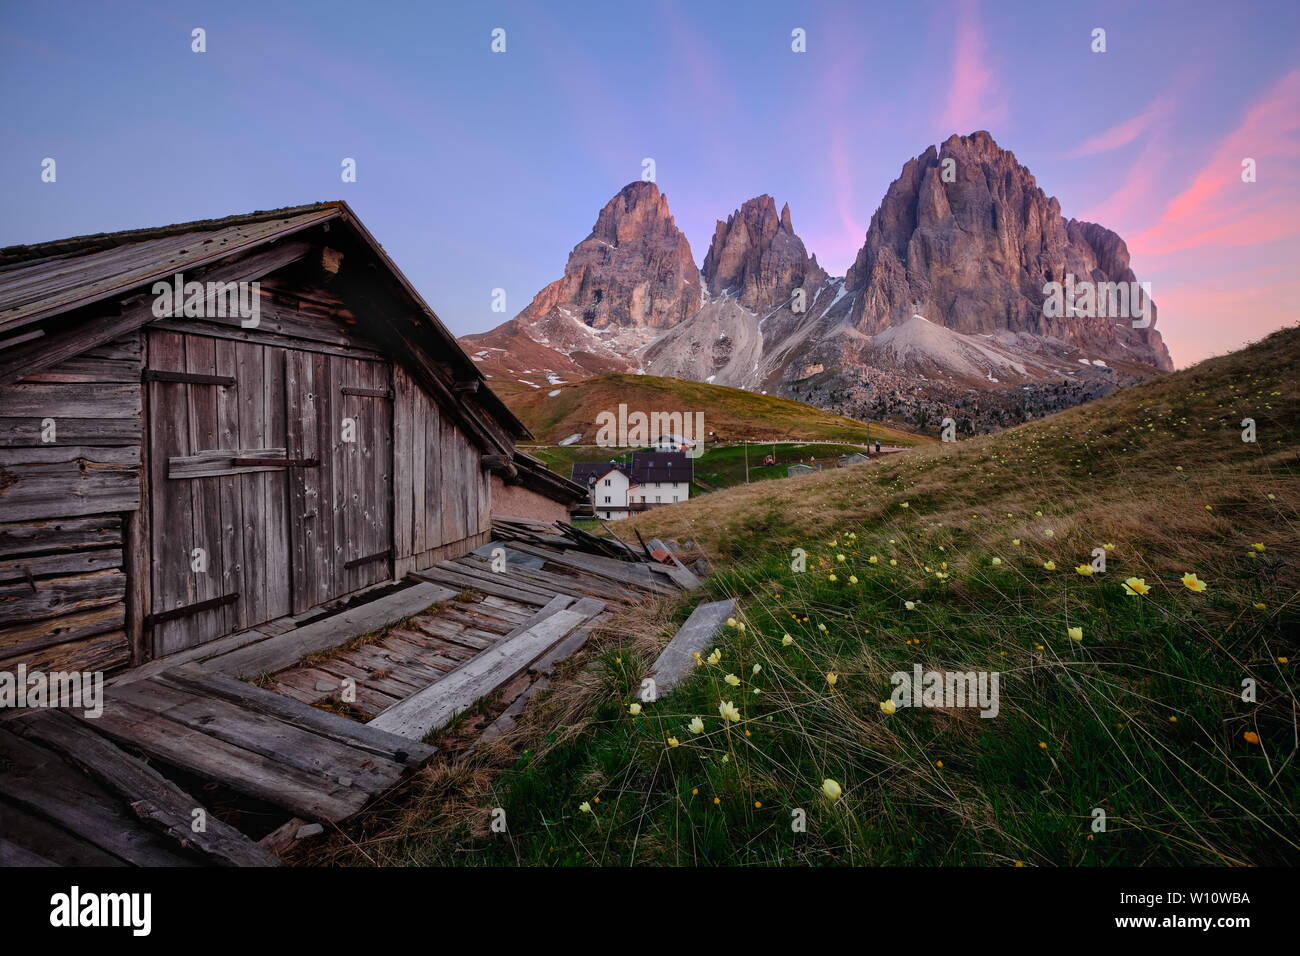 Old cabin in Dolomiti (Italy) with views to Sassolungo mountain at sunrise - Stock Image